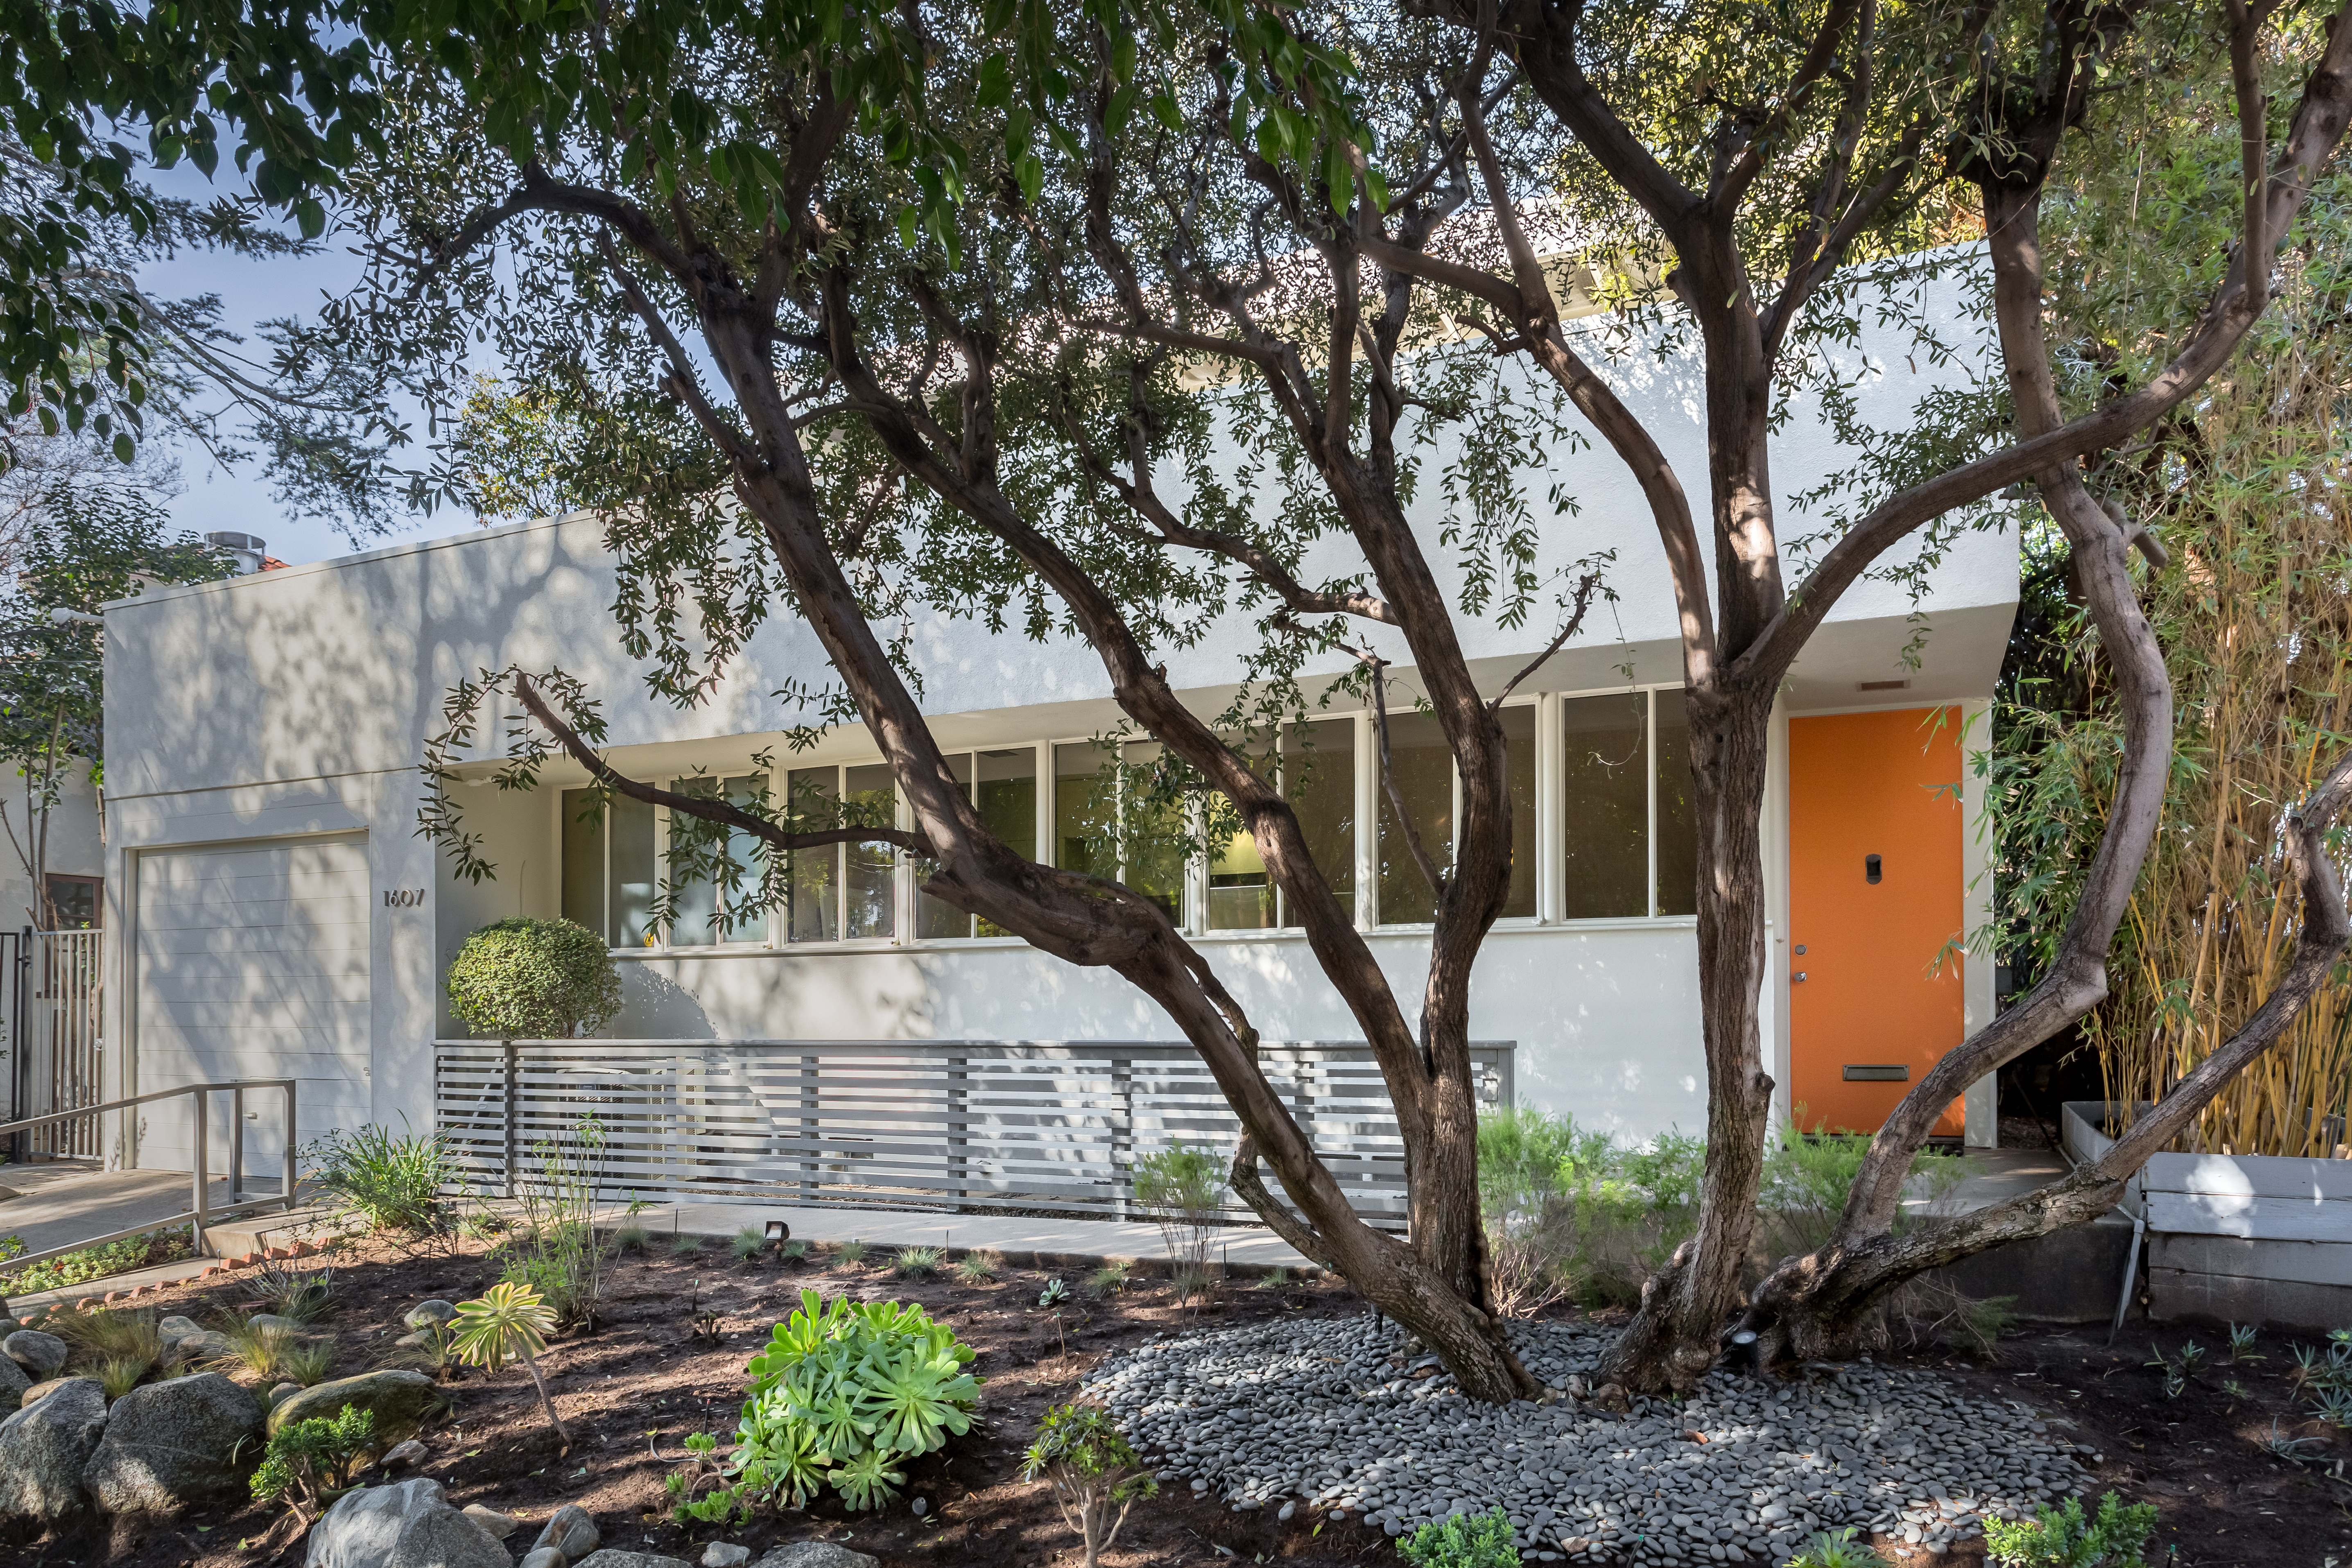 Case Study Houses  Then and Now   Modernica Blog   Modernica Measuring       square feet  the two bedroom  two bath home features hardwood and linoleum floors  indoor and outdoor fireplaces  and a rooftop terrace with